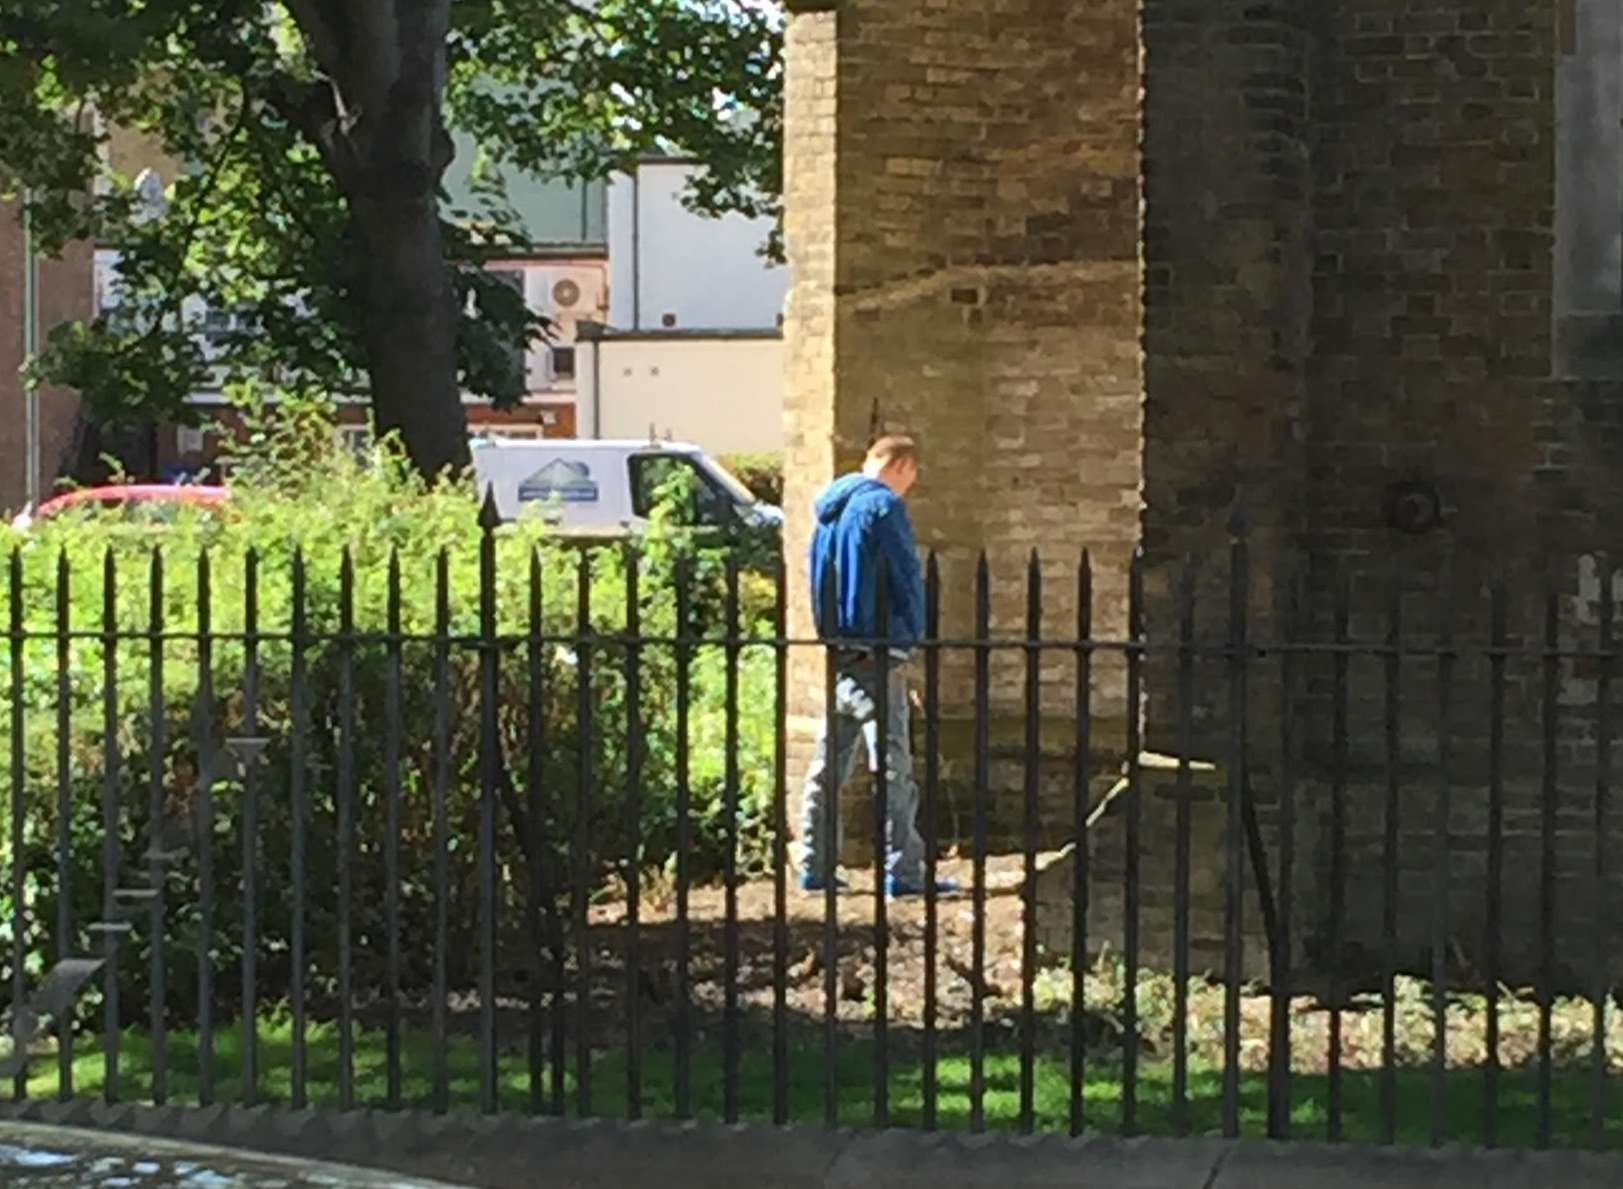 The man is snapped relieving himself against the historic building